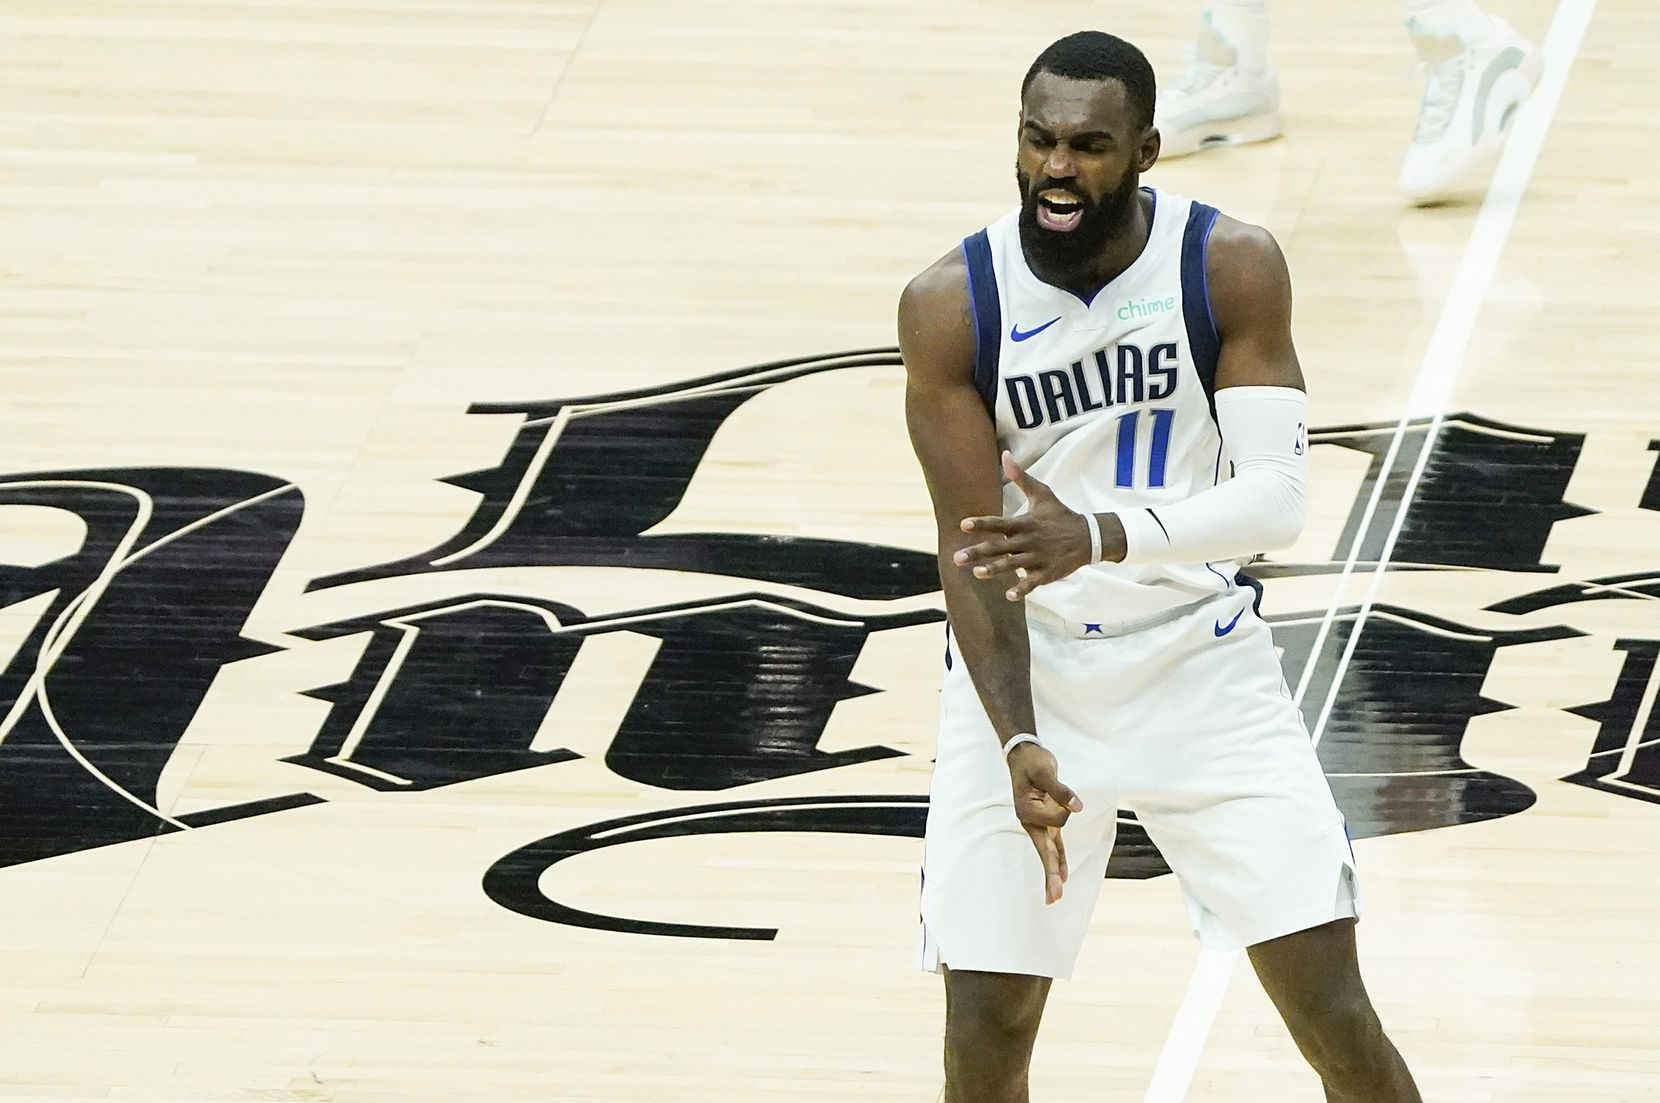 Dallas Mavericks forward Tim Hardaway Jr. (11) celebrates after hitting a 3-pointer during the third quarter of an NBA playoff basketball game against the LA Clippers at the Staples Center on Wednesday, June 2, 2021, in Los Angeles.  (Smiley N. Pool/The Dallas Morning News)